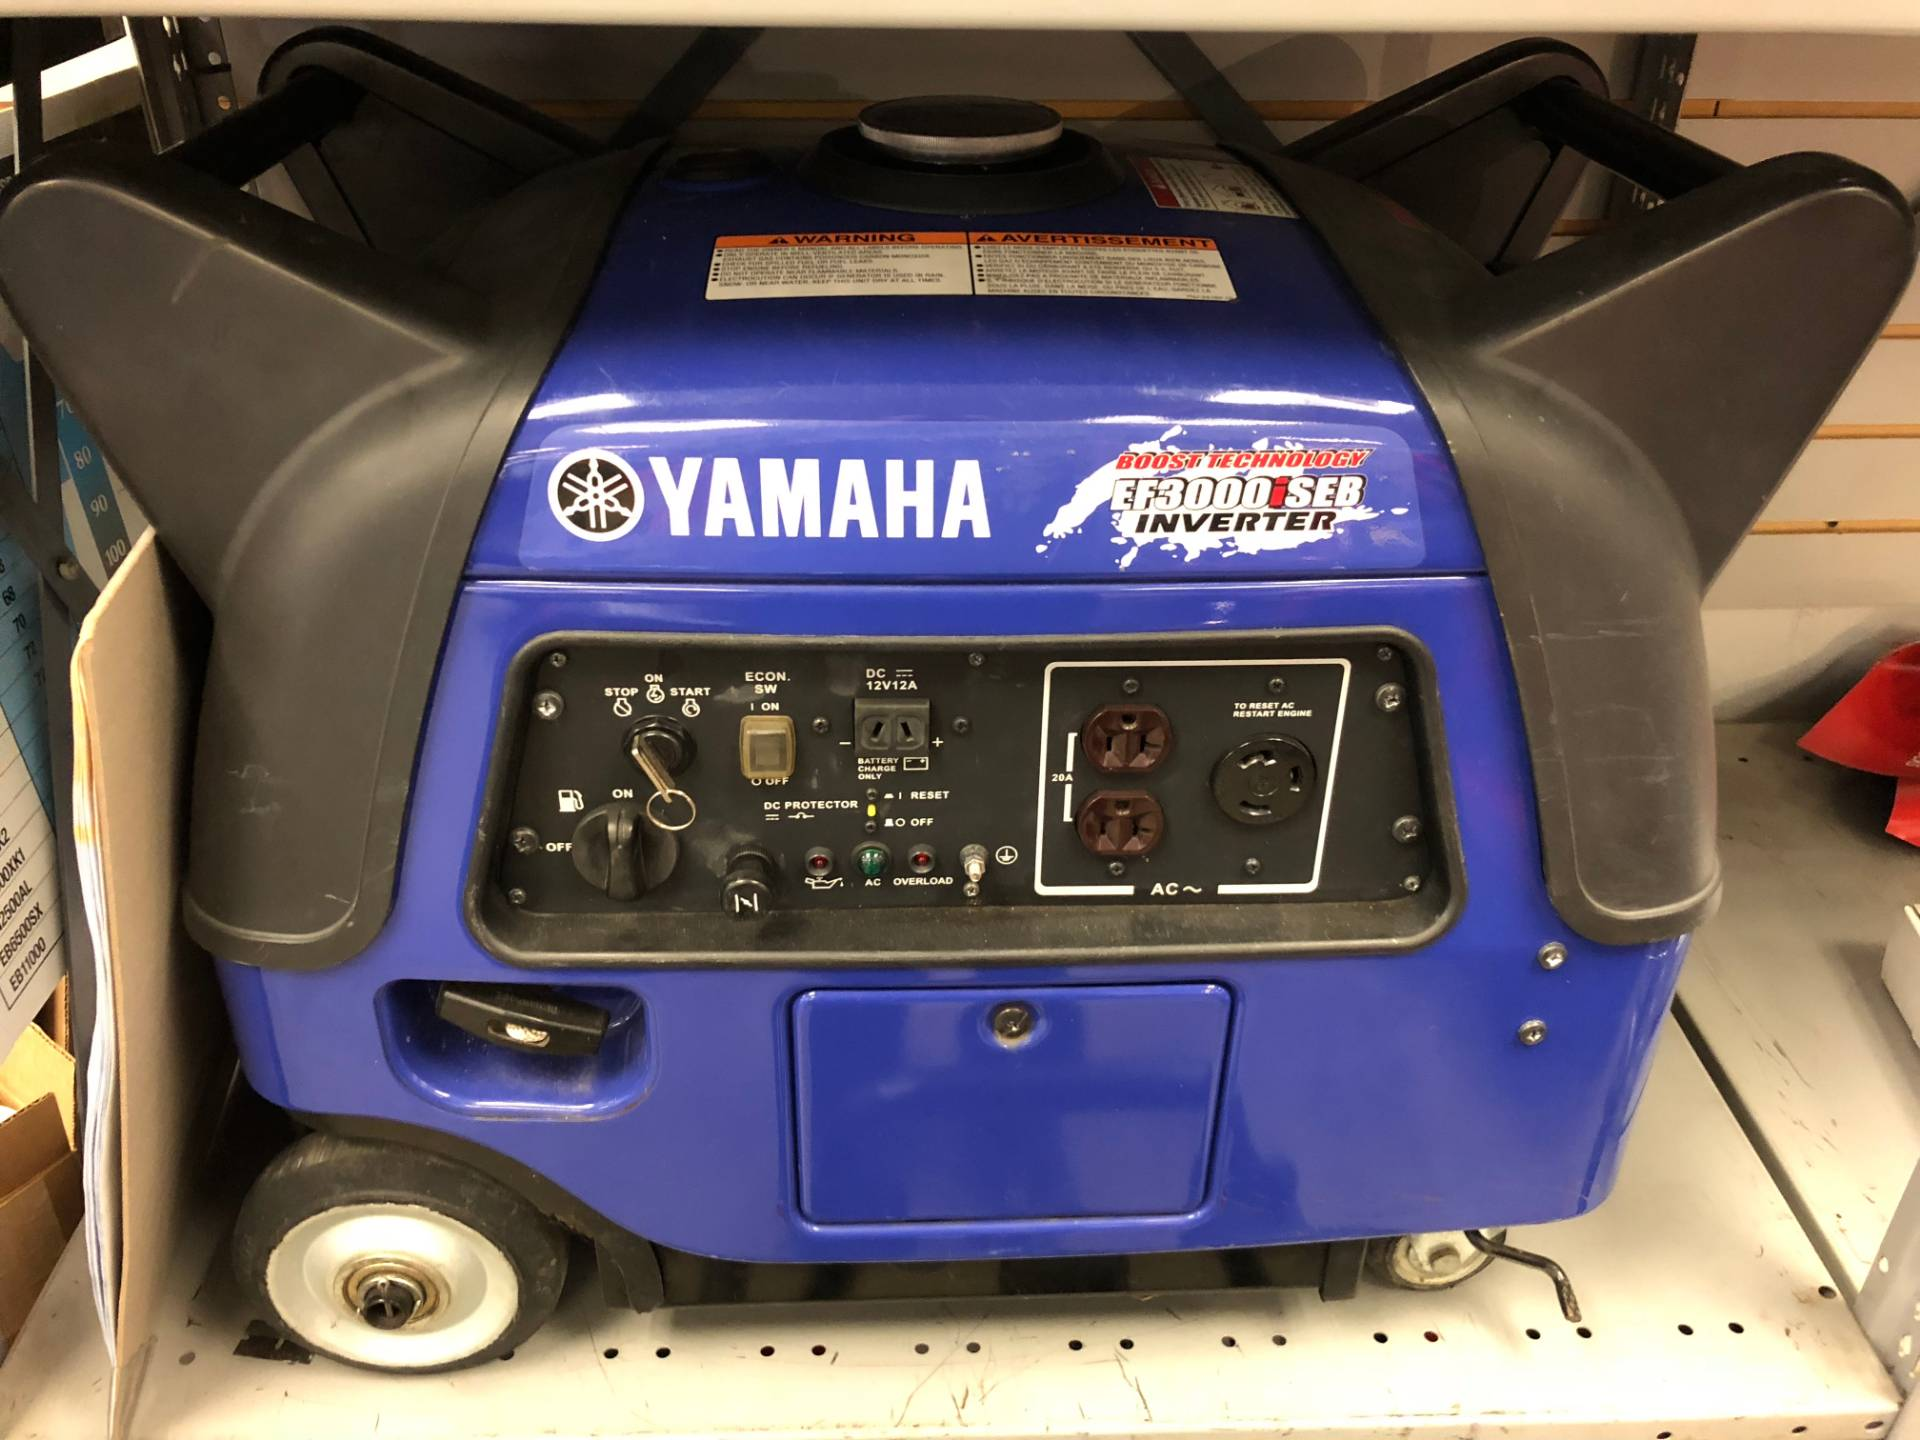 2015 Yamaha Inverter EF3000iSEB in Northampton, Massachusetts